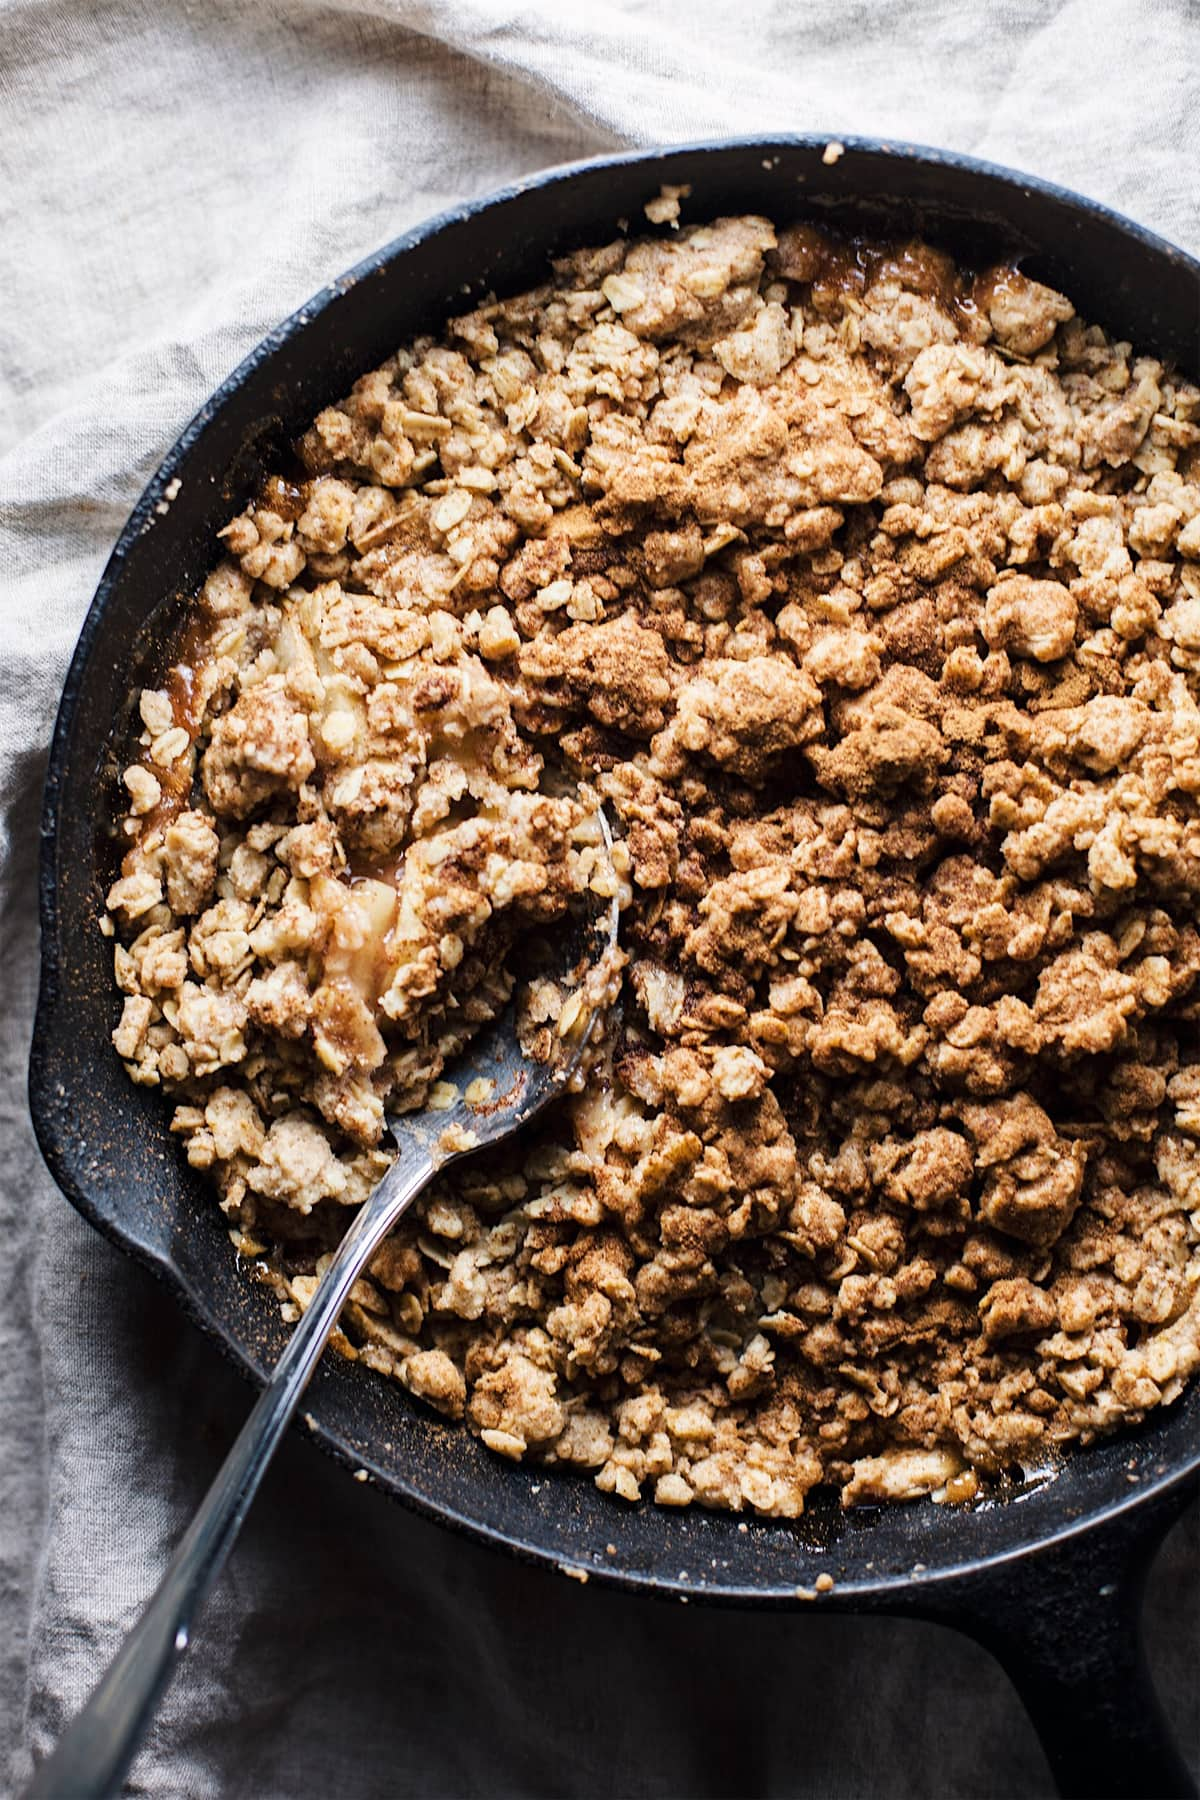 Cast iron skillet of apple crumble with a spoon in it.